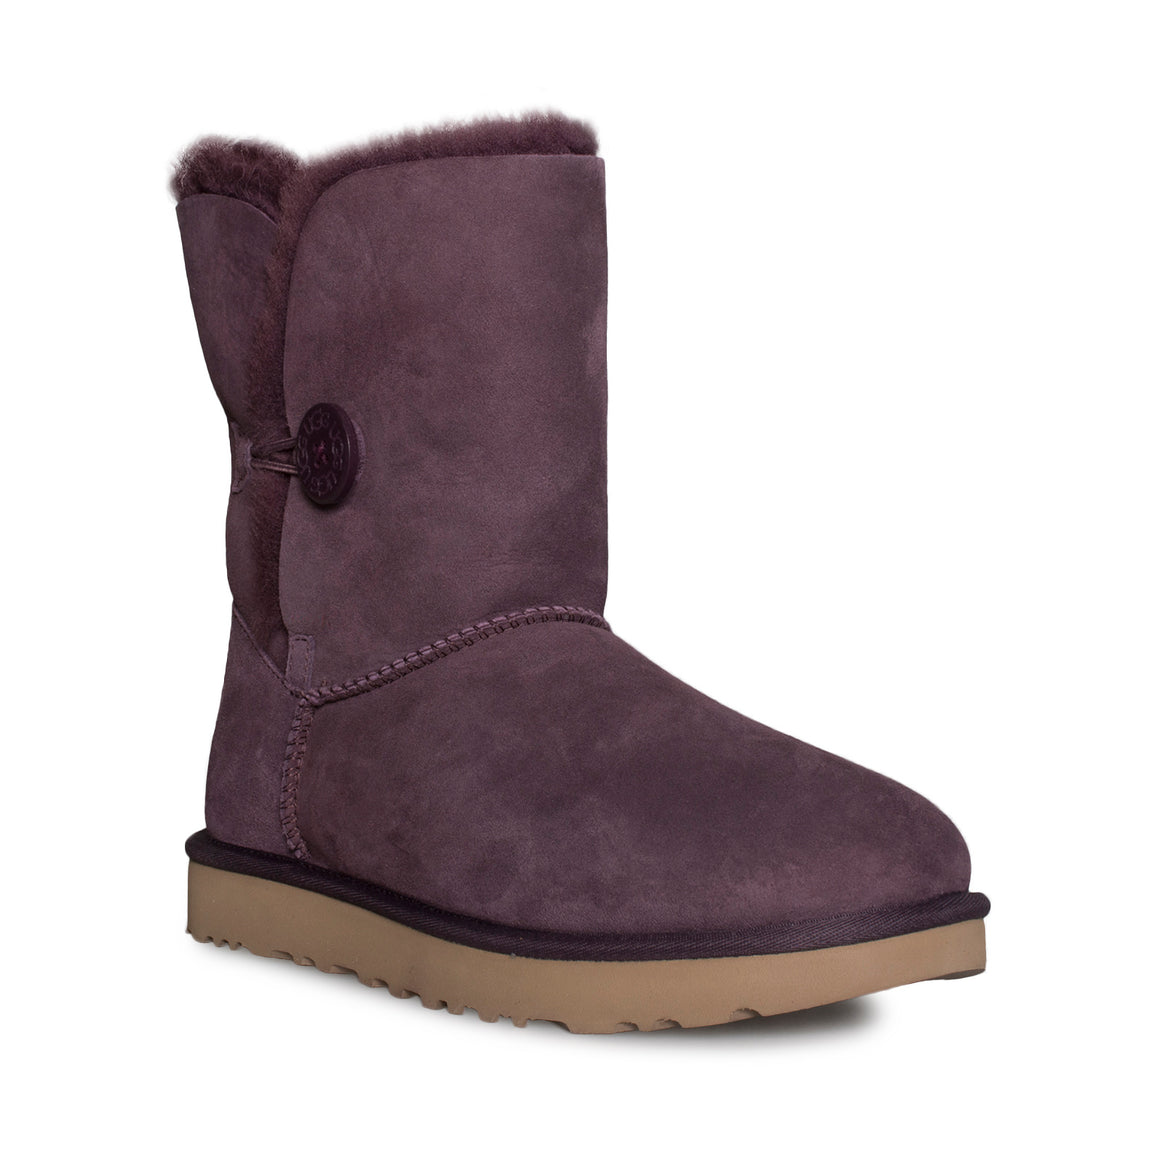 UGG Bailey Button II Port Boots - Women's